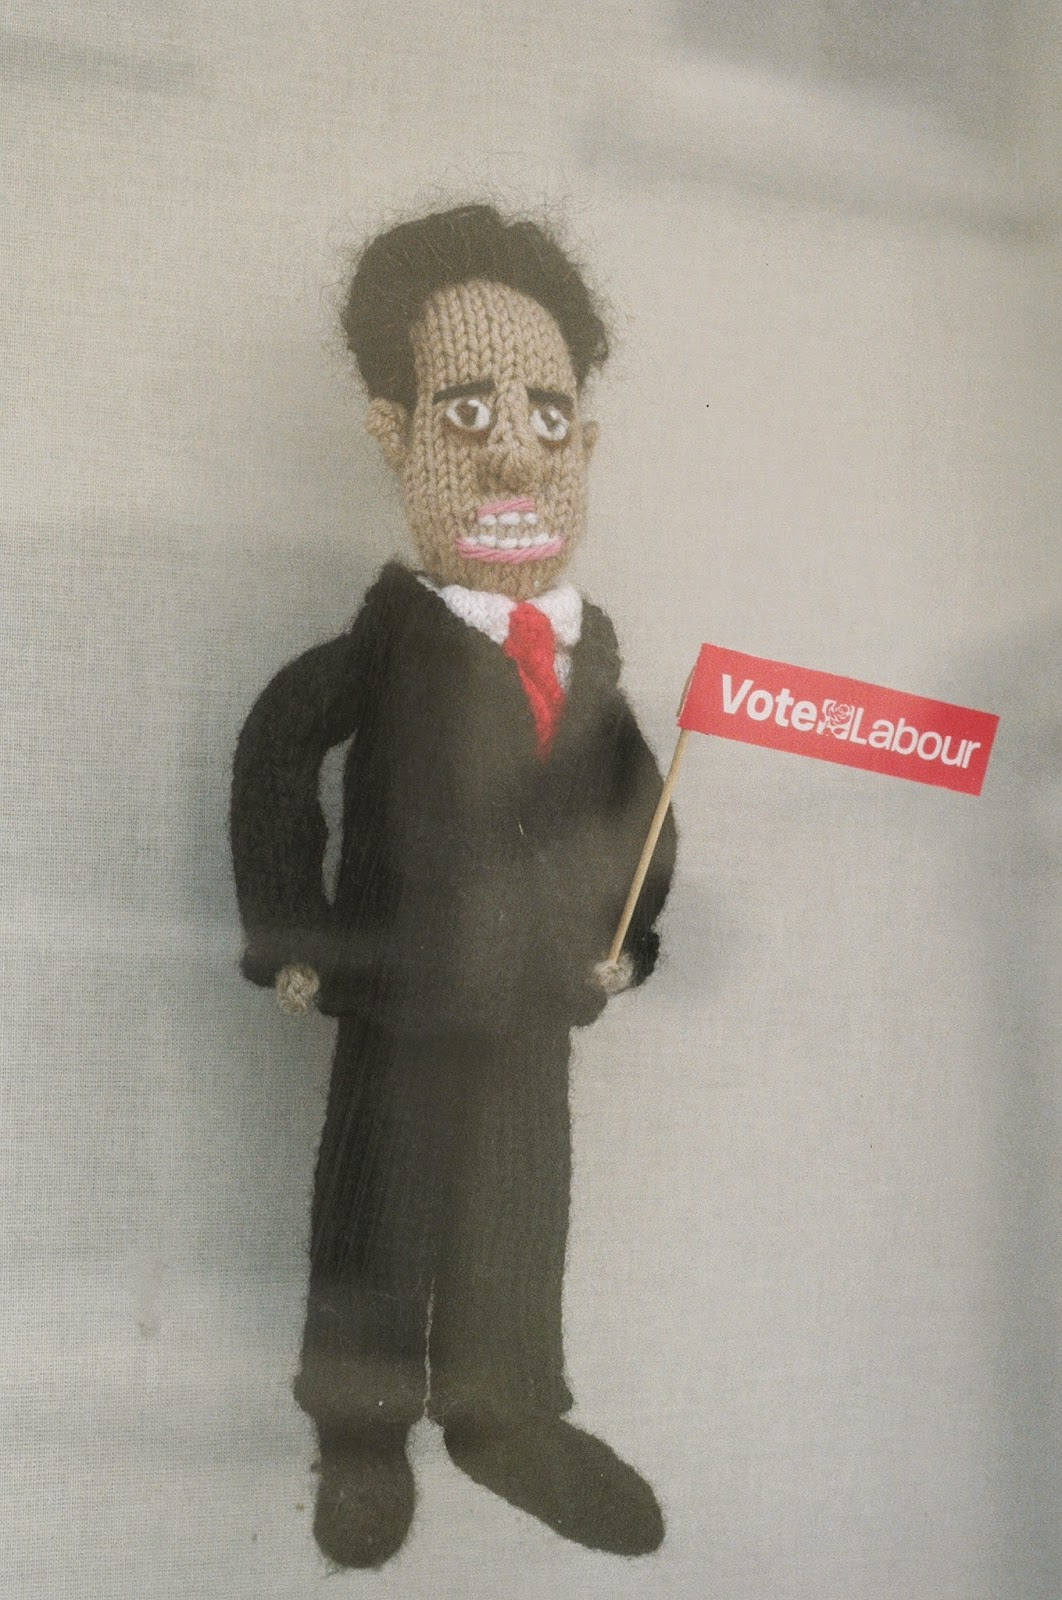 ED MILIBAND, LABOUR PARTY LEADER, PRIME MINISTER IN WAITING, SNP, NICOLA STURGEON, ED BALLS, COALITION, HUNG PARLIAMENT, 2015 GENERAL ELECTION, CONFIDENCE AND SUPPLY, DEAL, KENT © VAC 100 DAYS 4 MILLION CONVERSATIONS